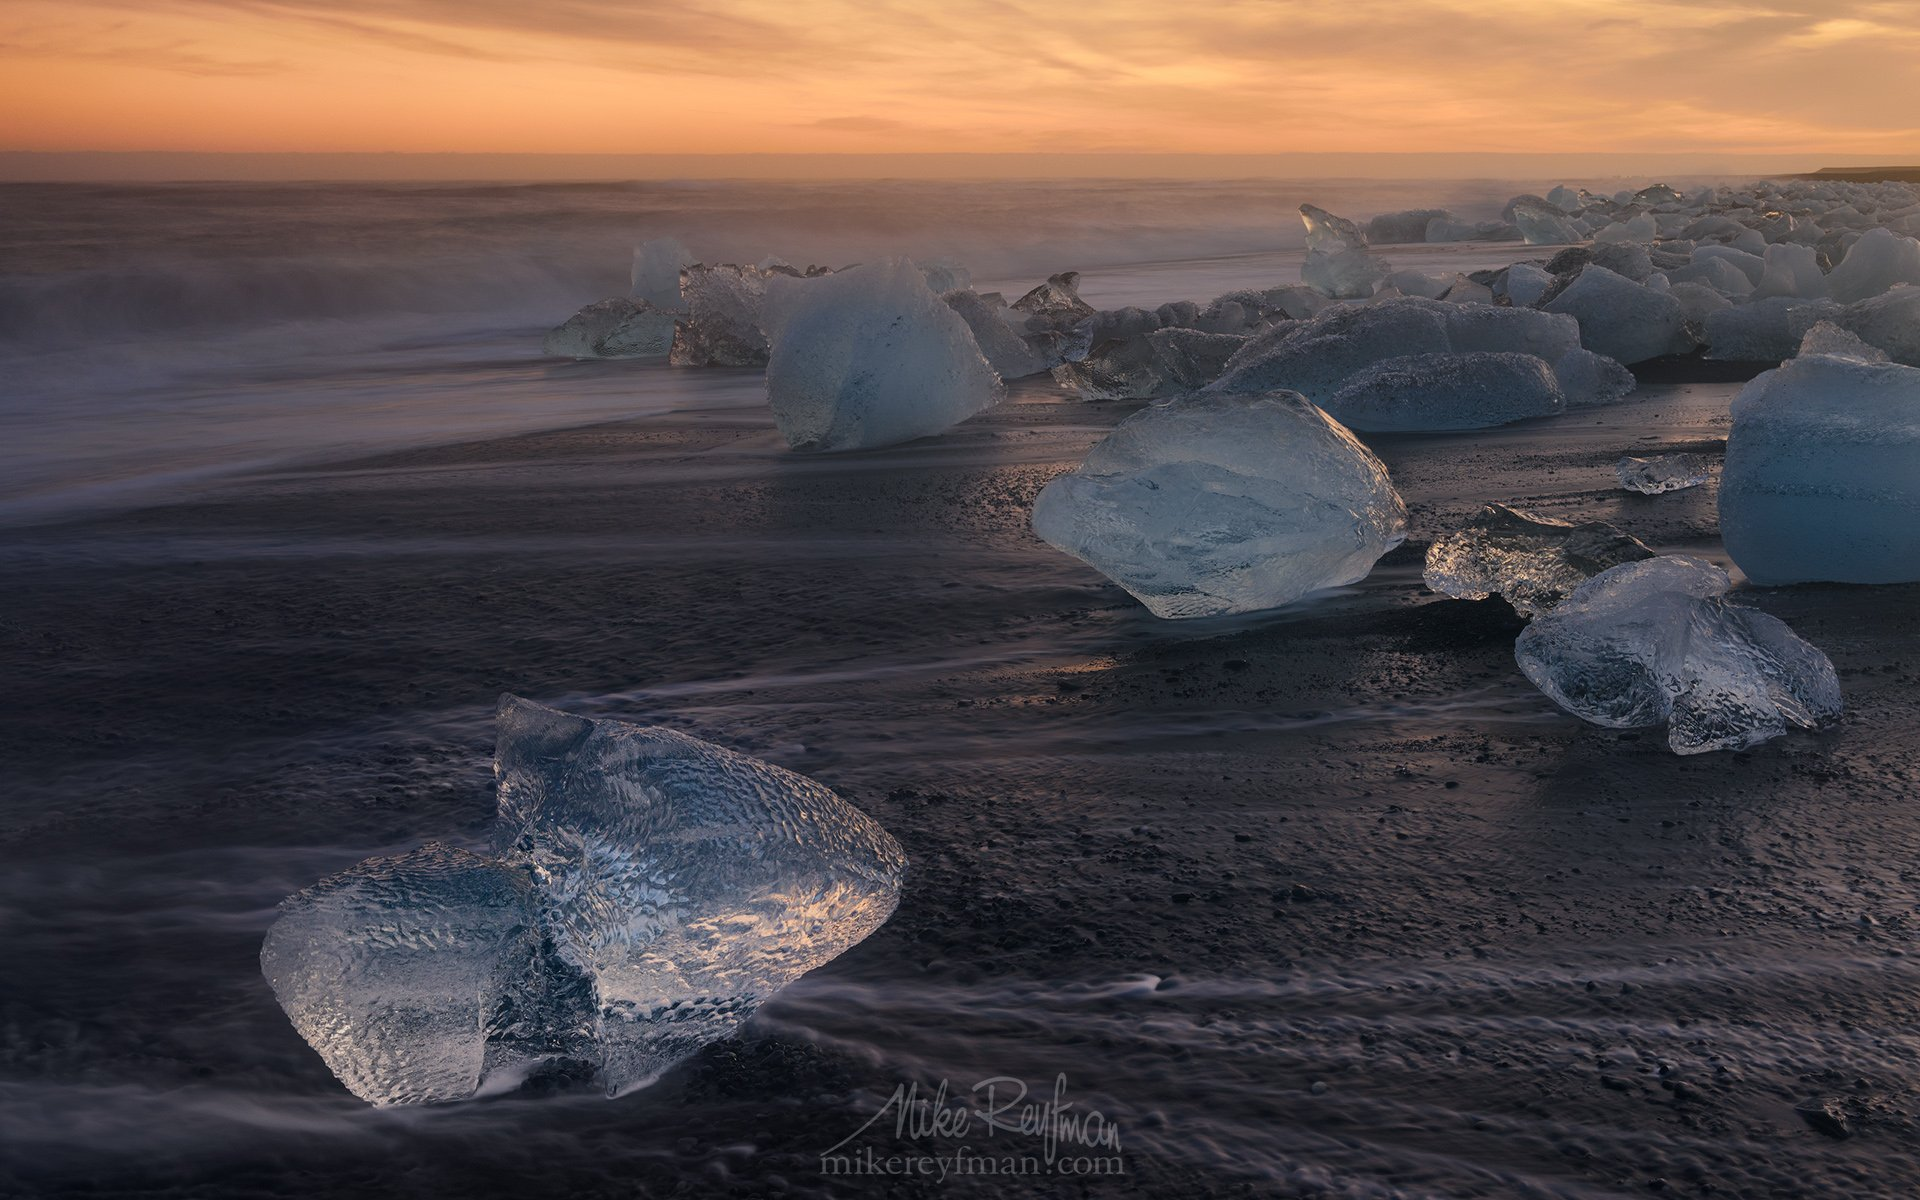 winter, ice, breidamerkursandur, iceland, jokulsarlon glacial lagoon, chunks of ice, glacier, jokulsarlon lagoon, ocean, black volcanic-sand beach, ice-chunks, polished, stranded, shore, diamonds, black velvet, Майк Рейфман